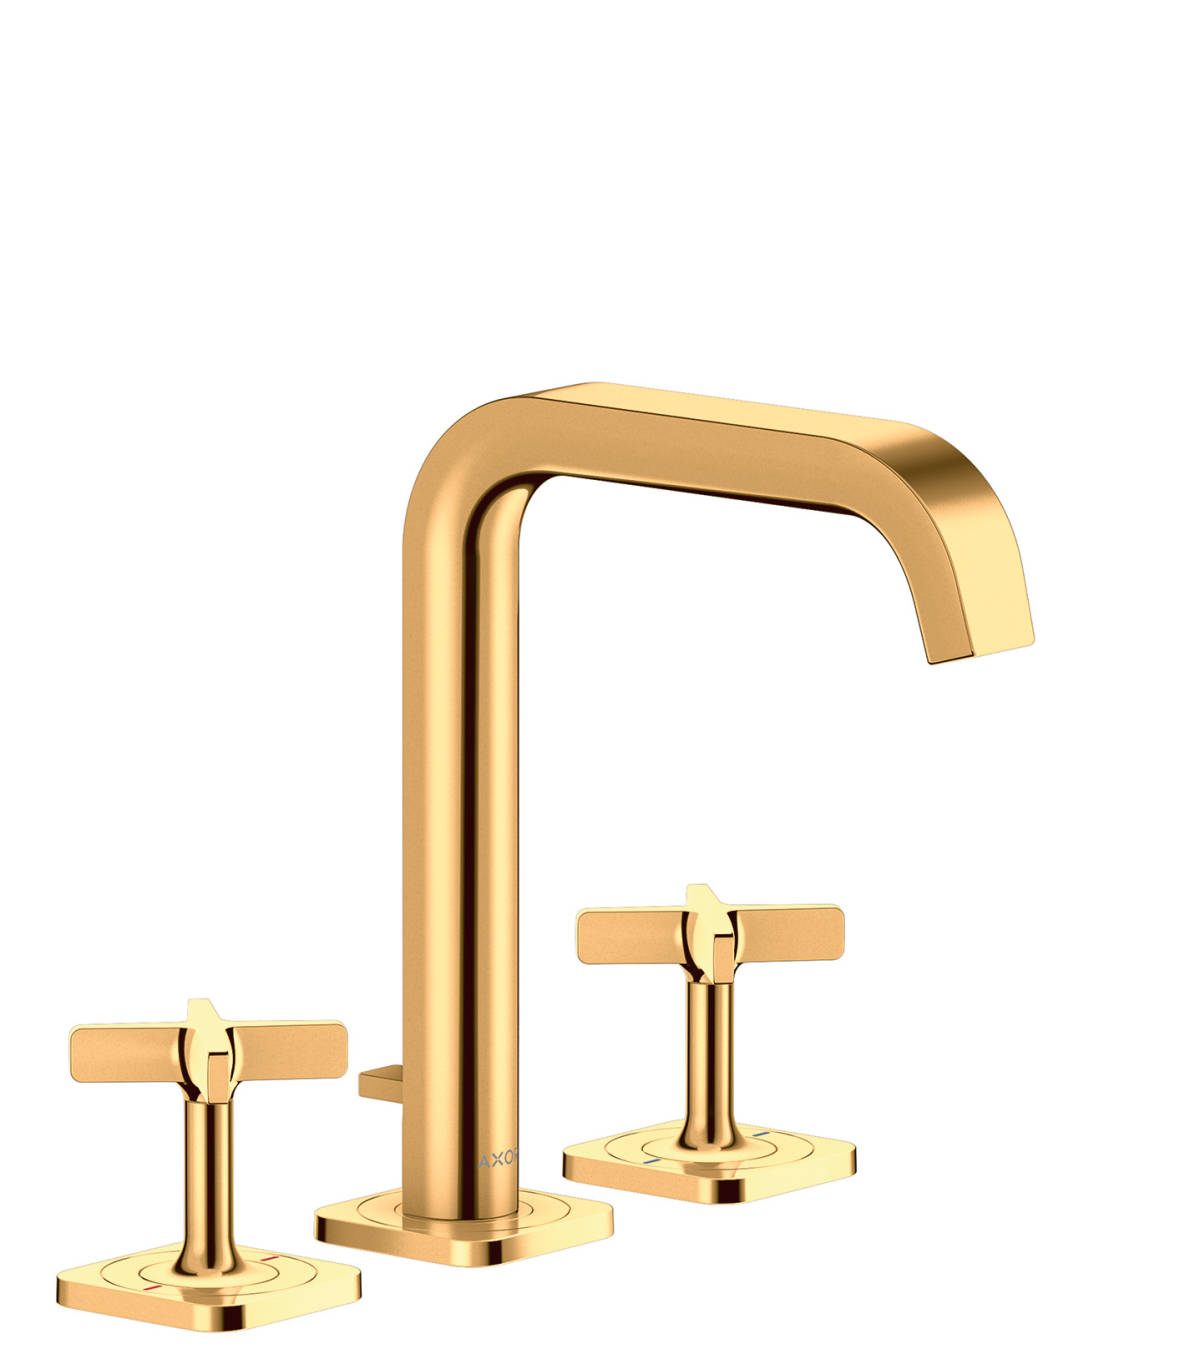 3-hole basin mixer 170 with escutcheons and pop-up waste set, Polished Gold Optic, 36108990